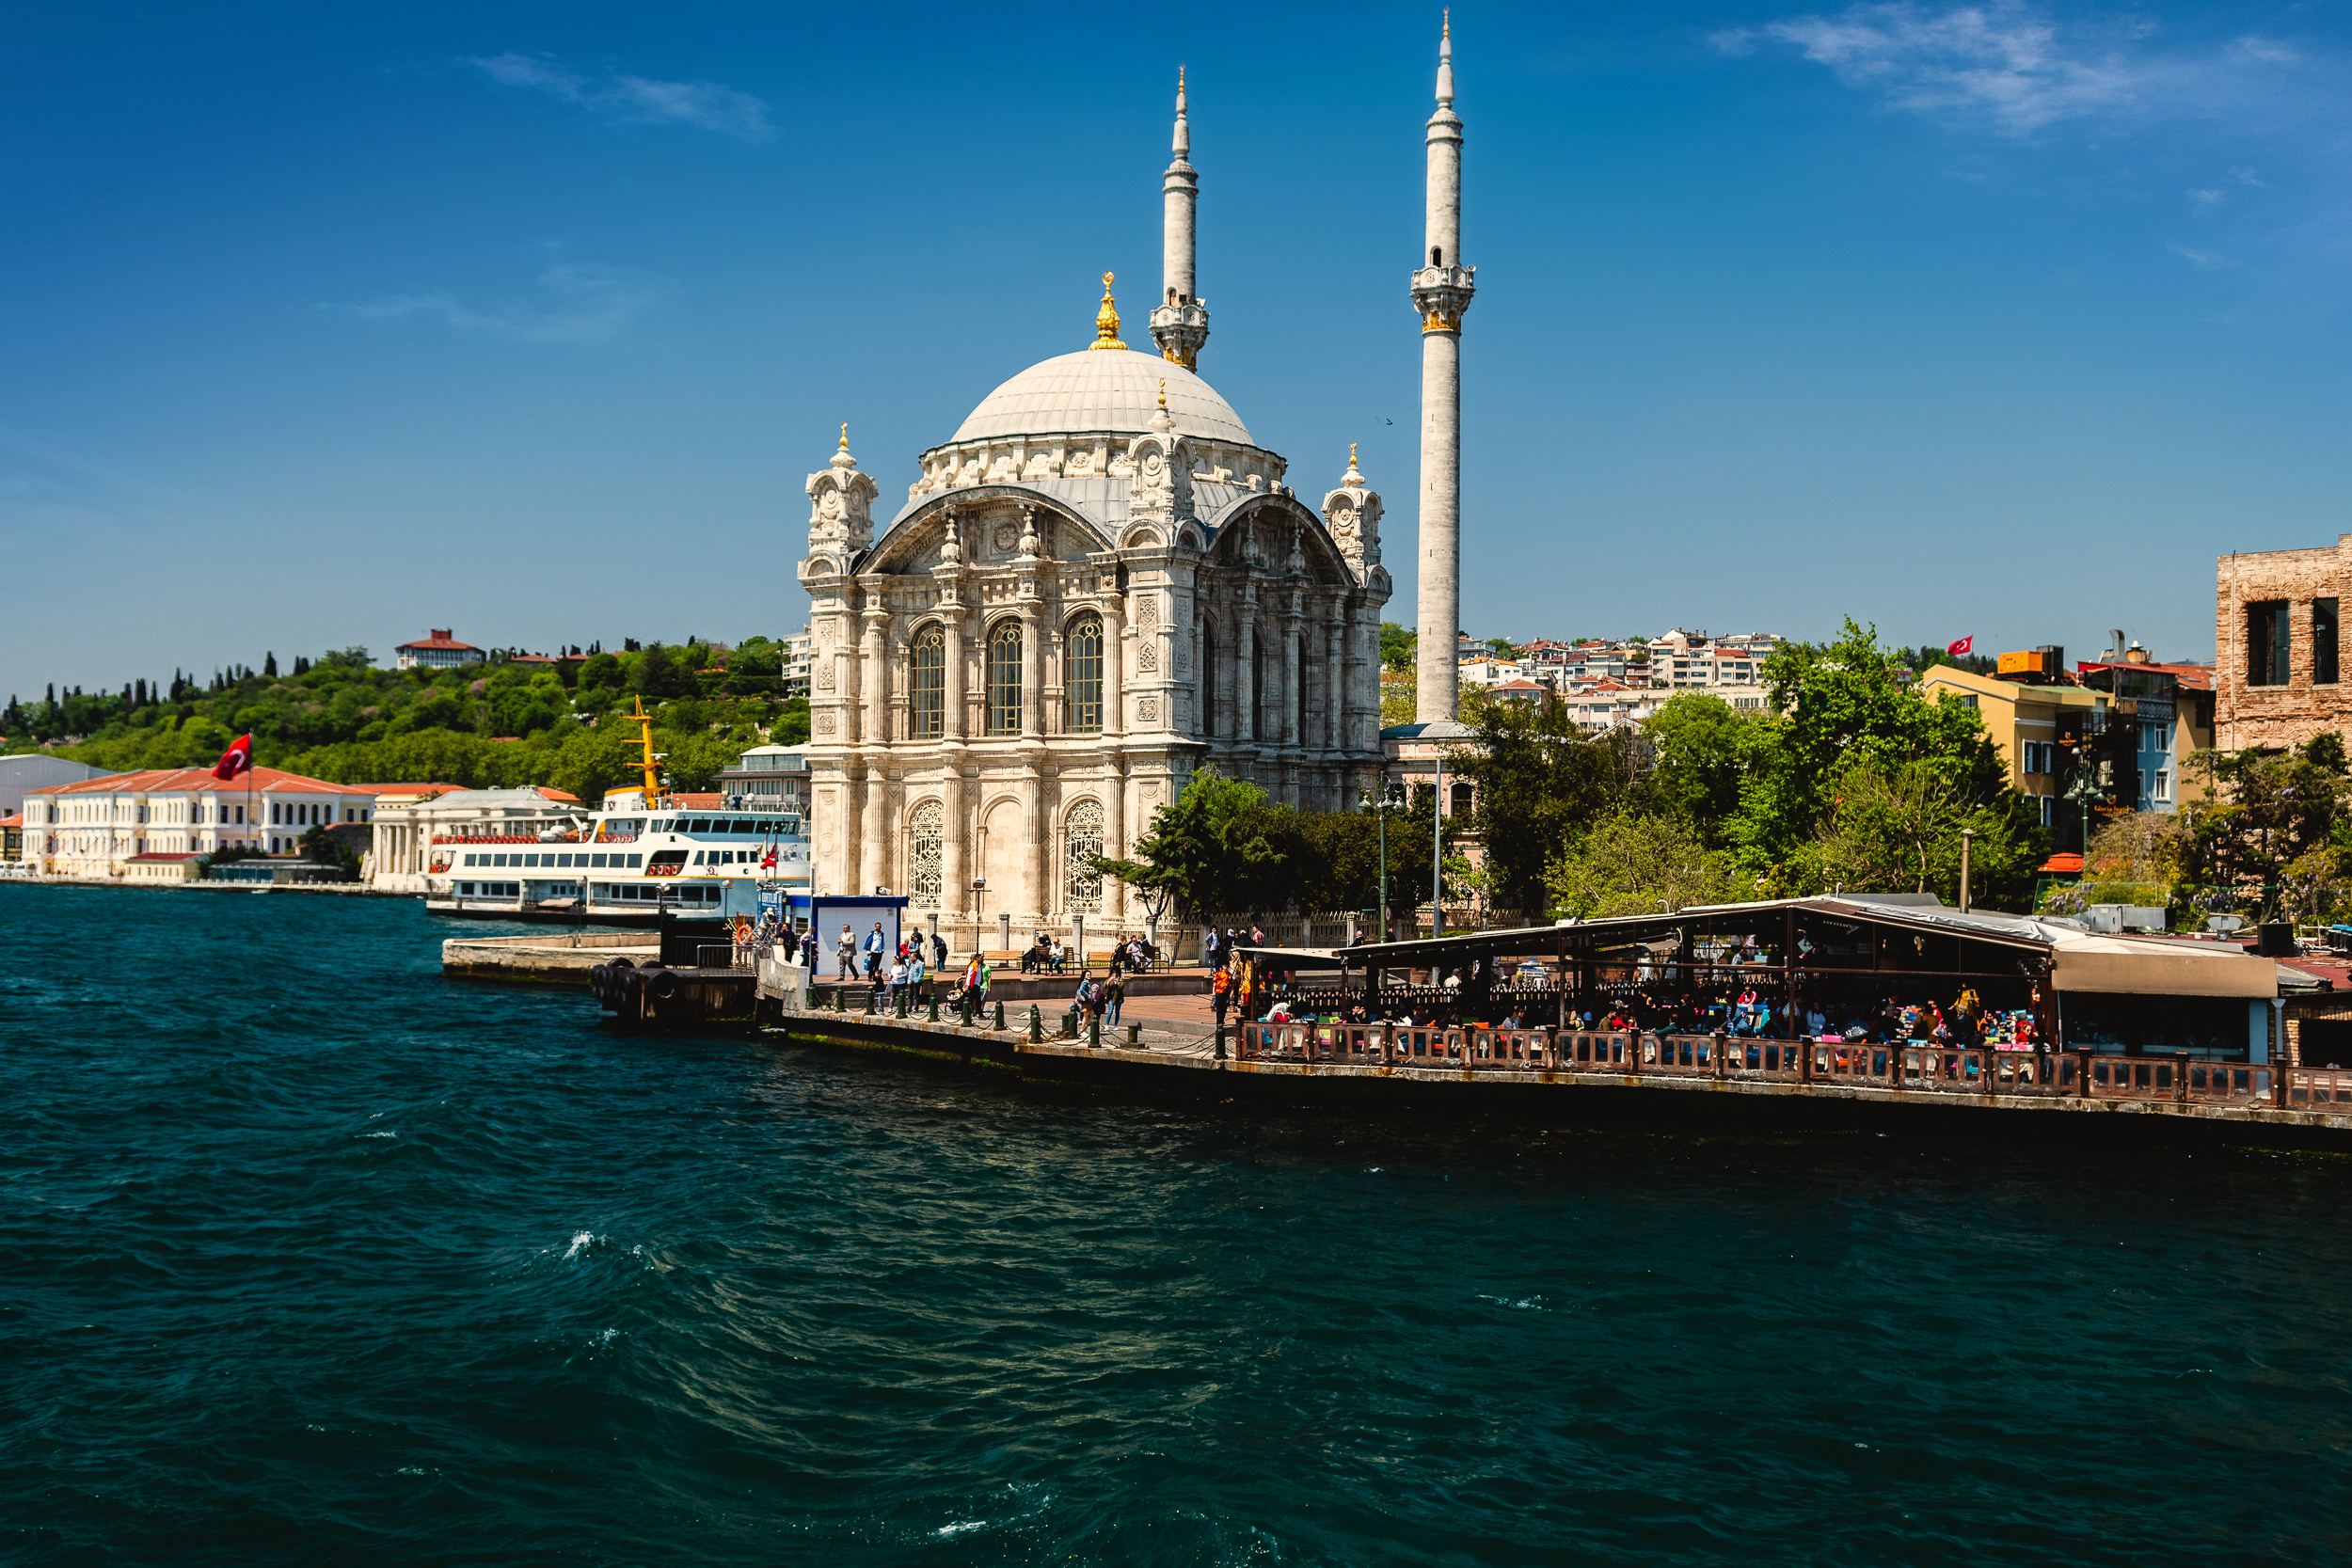 Ortakoy Mosque on the banks of the Bosphorus.